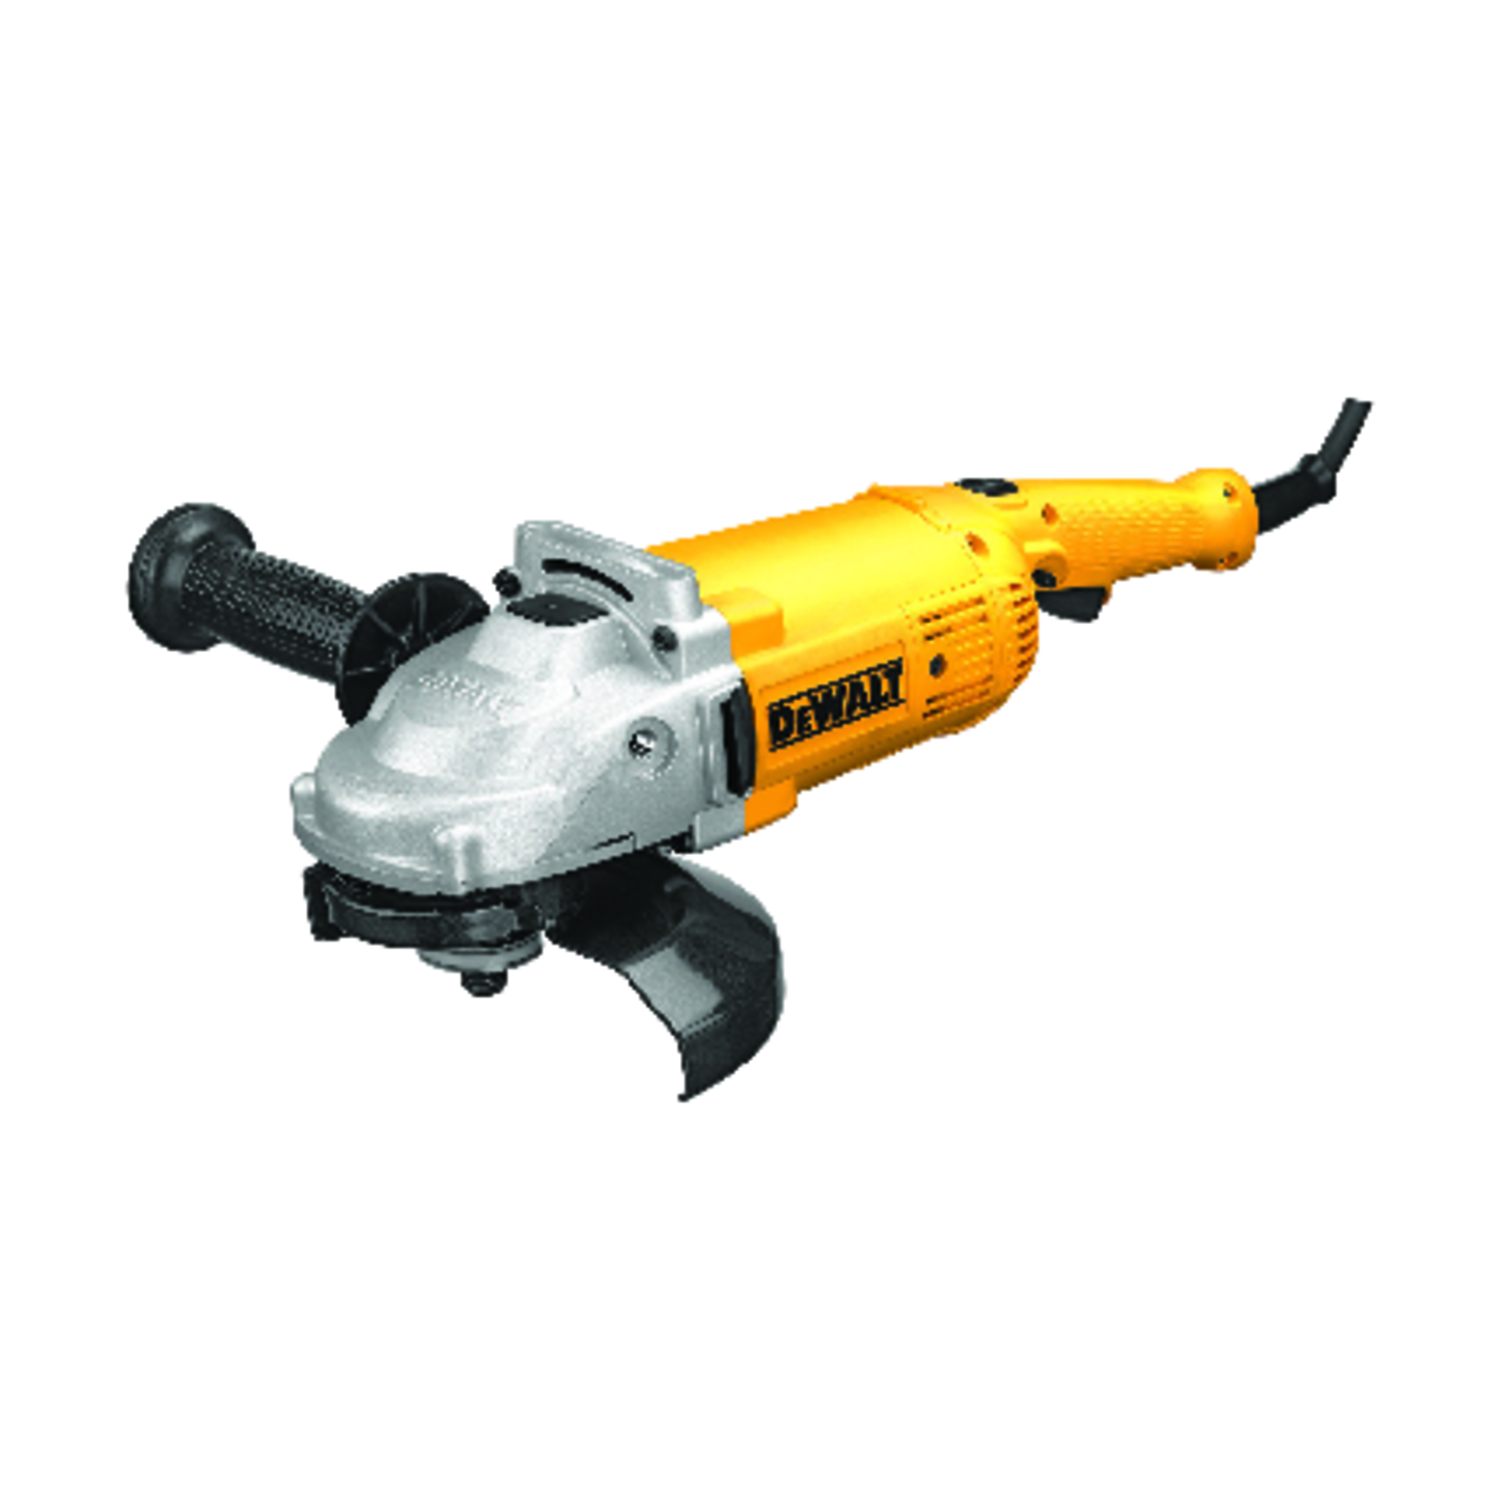 DeWalt  15 amps Corded  Small  Angle Grinder  8500 rpm 7 in.